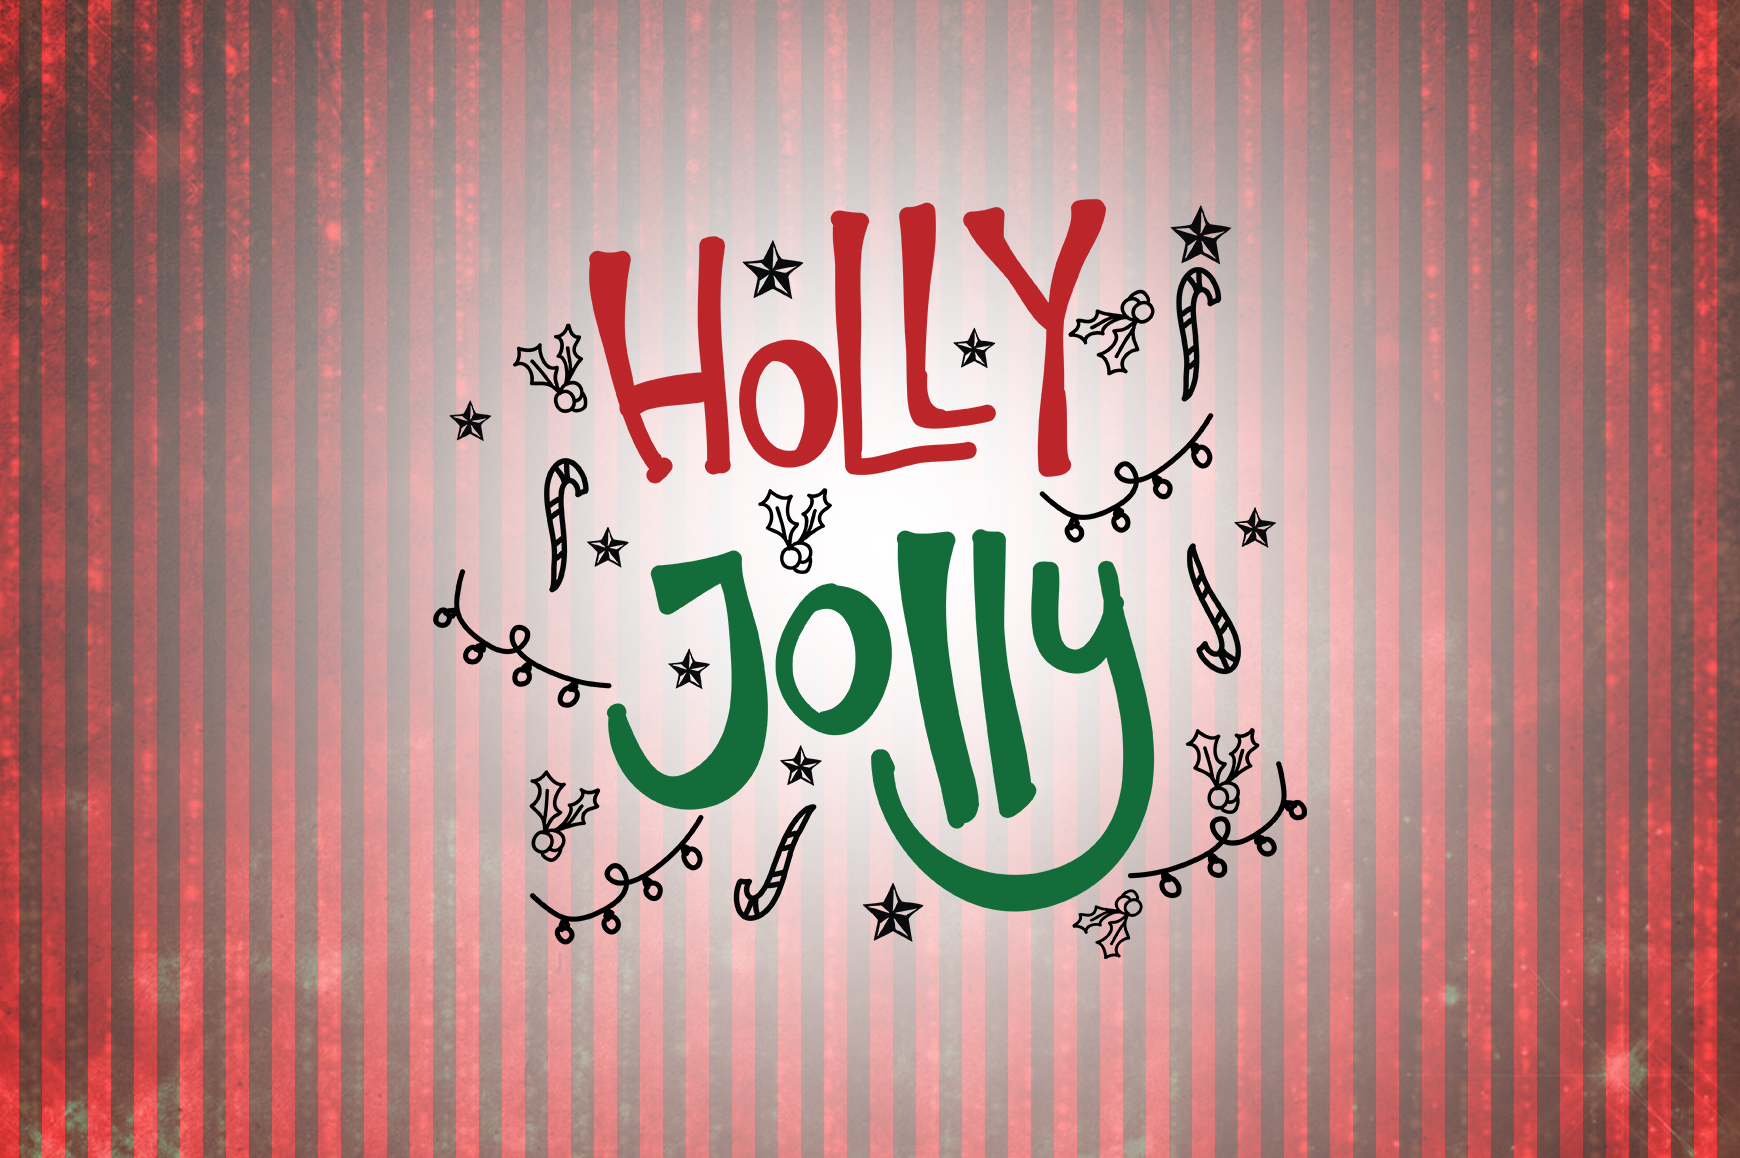 Holly Jolly Christmas Quotes Graphic By Wienscollection